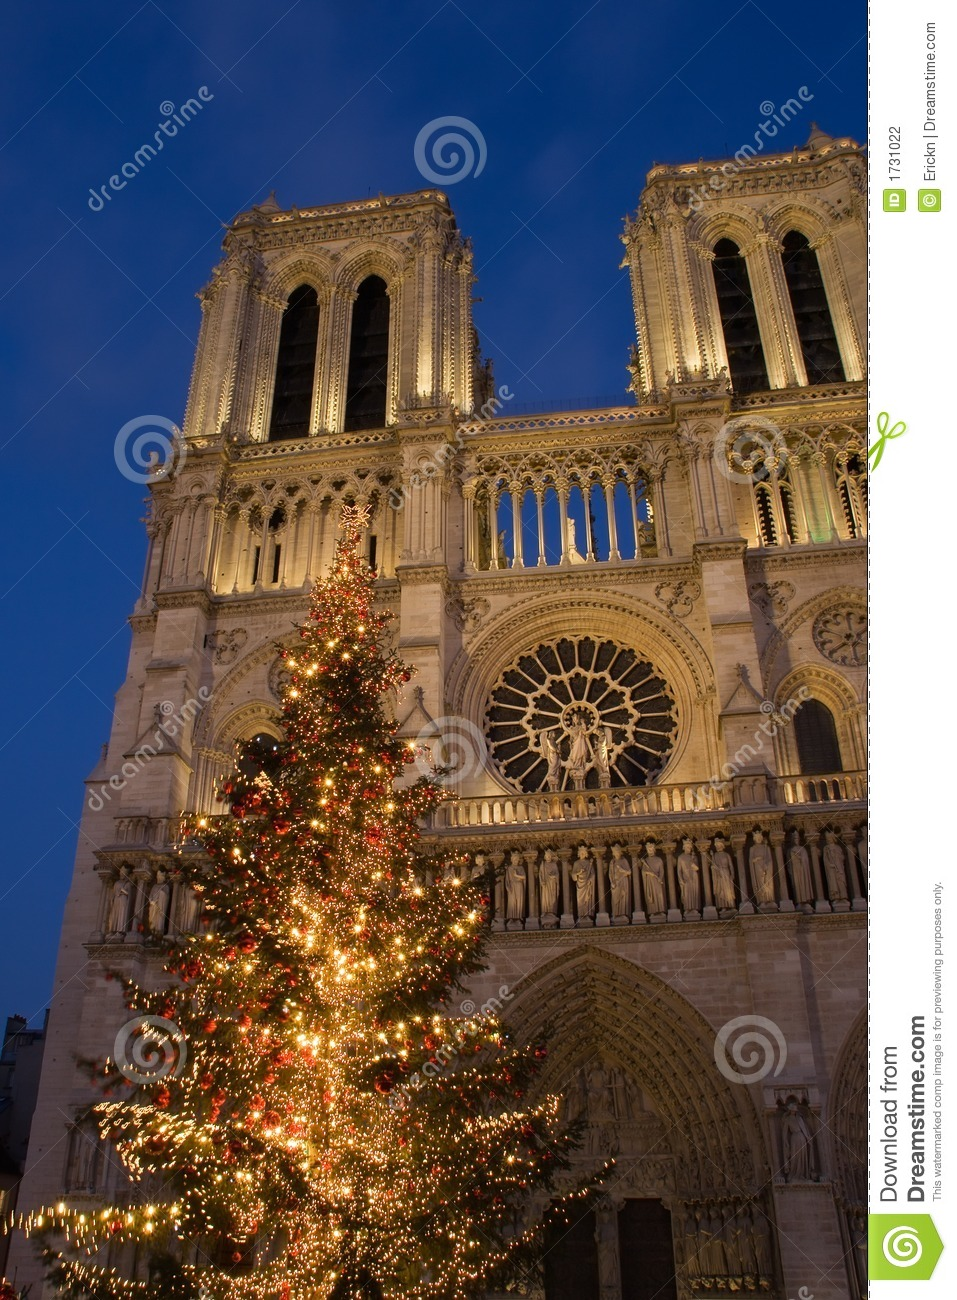 Christmas at Notre-Dame stock photo. Image of sacred, paris - 1731022